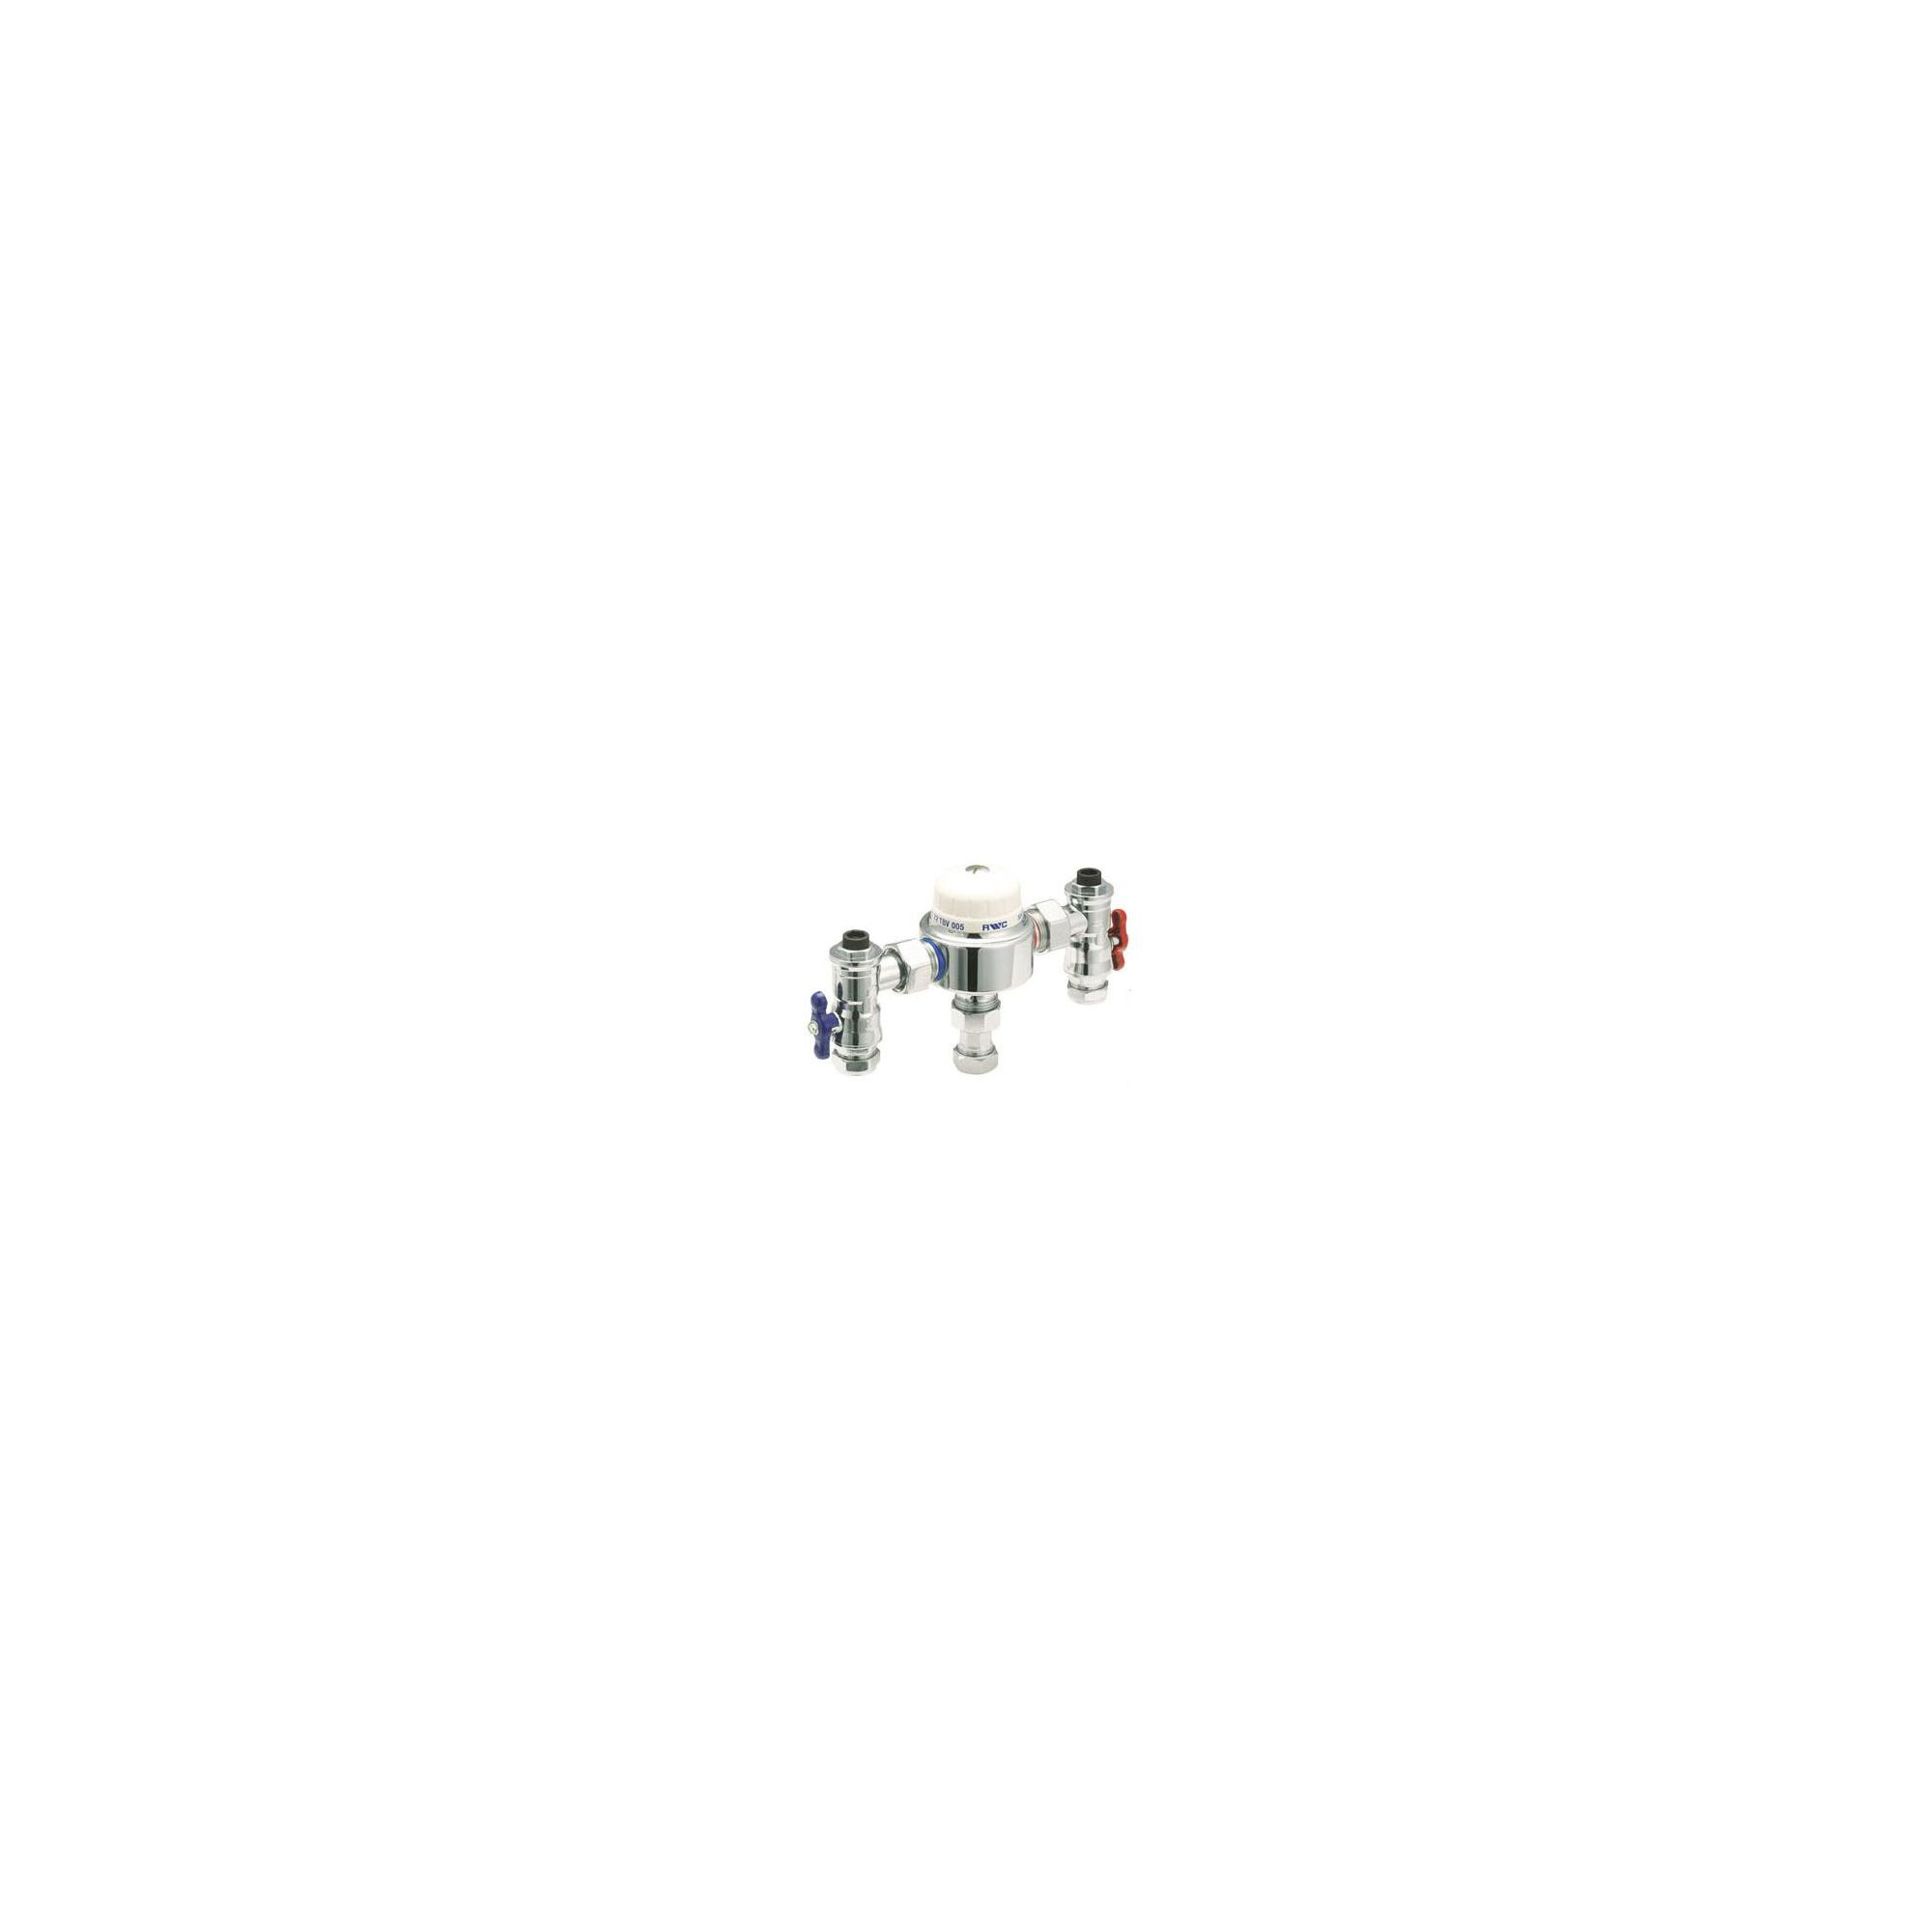 Deva TMV3 Thermostatic Blending / Mixing Valve 22mm with Check Valve Chrome at Tesco Direct